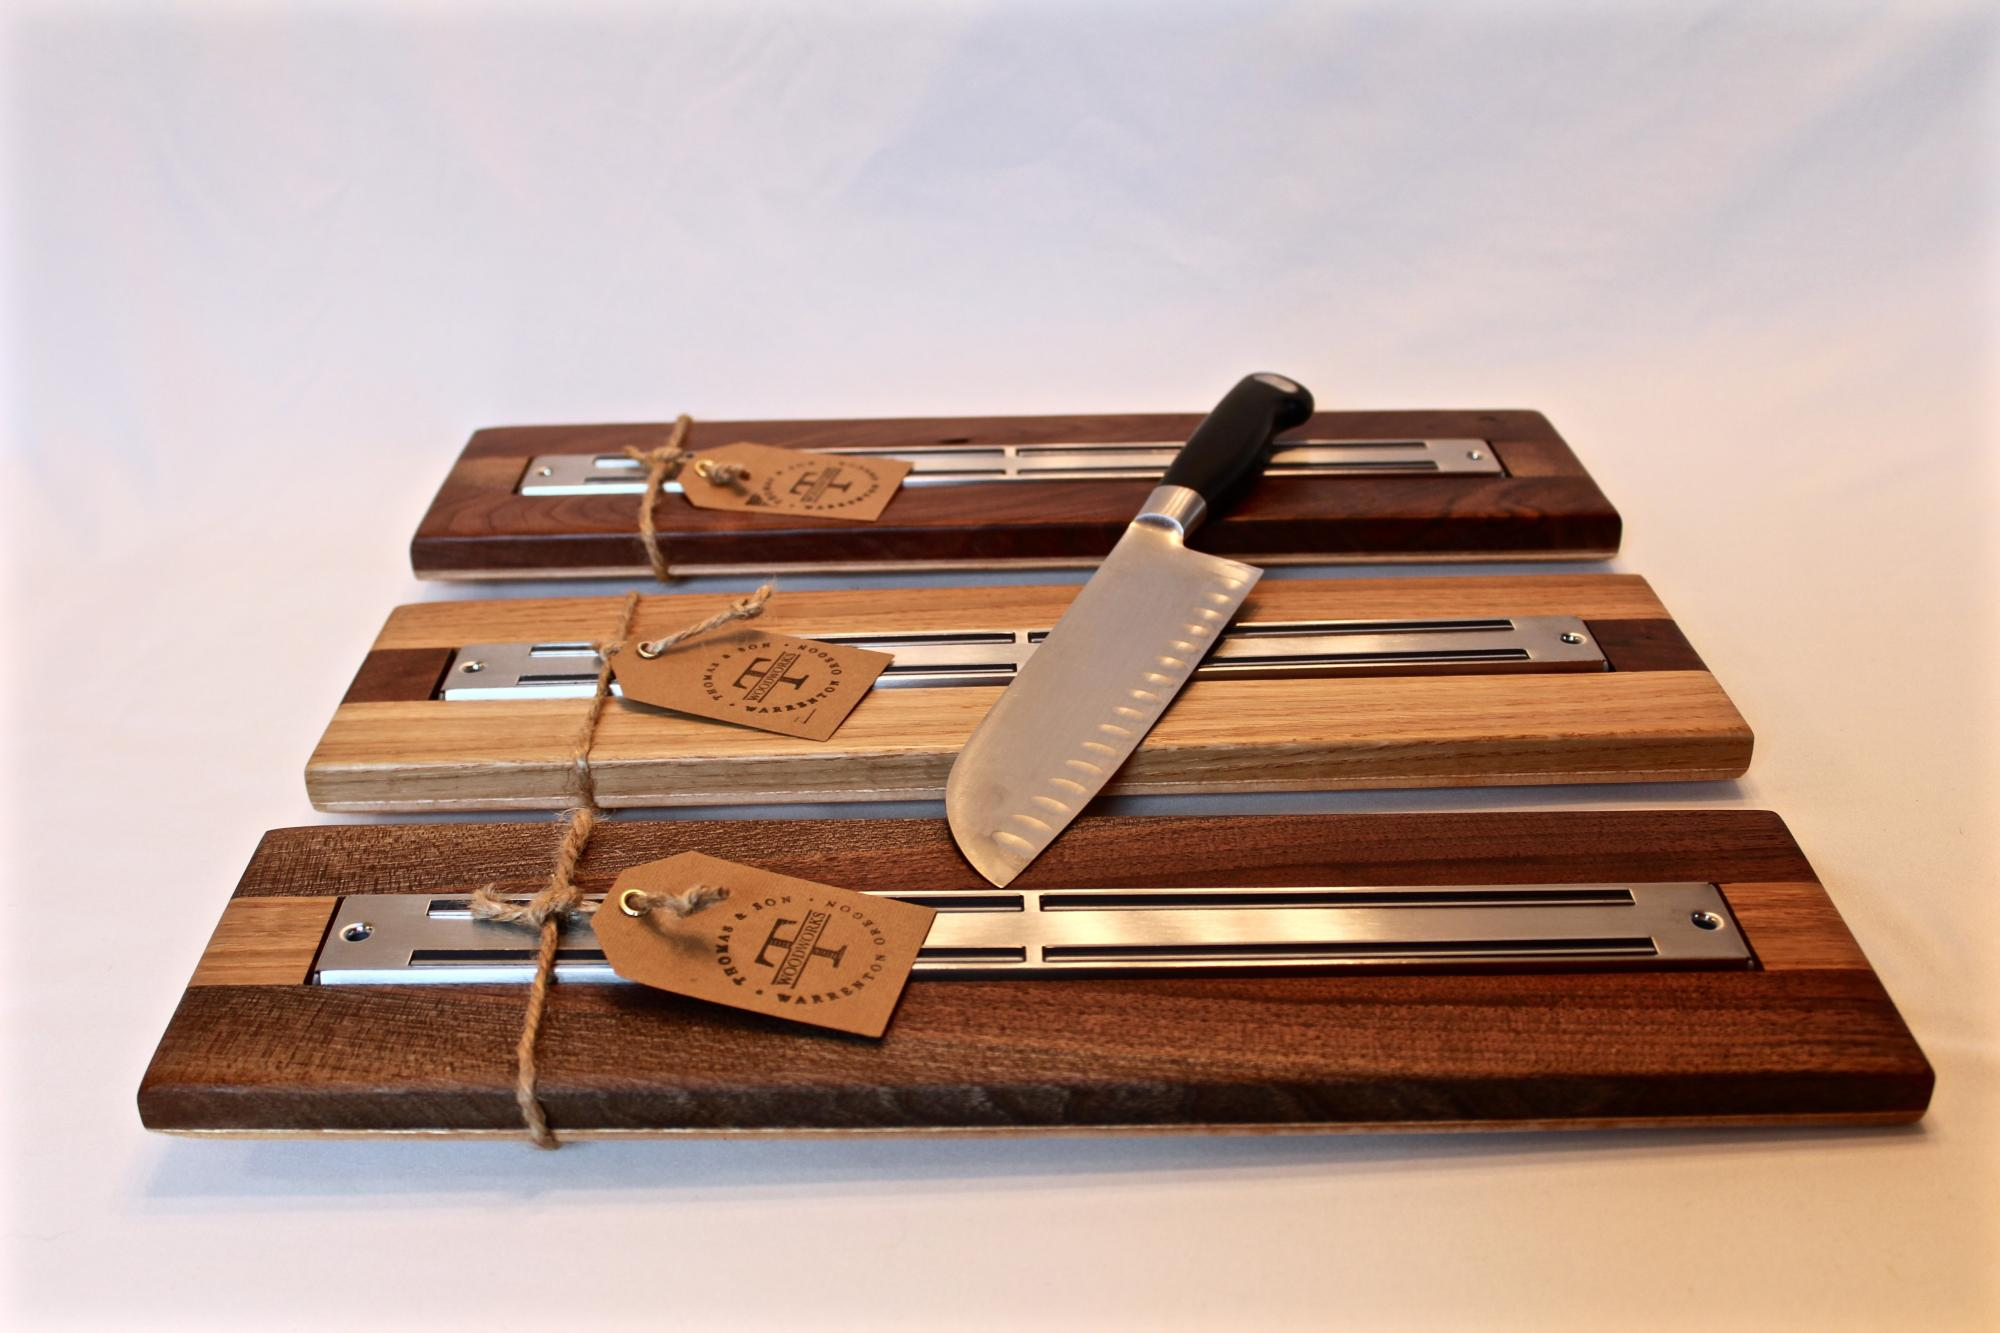 Mixed woods stainless steel magnetic knife racks. $55